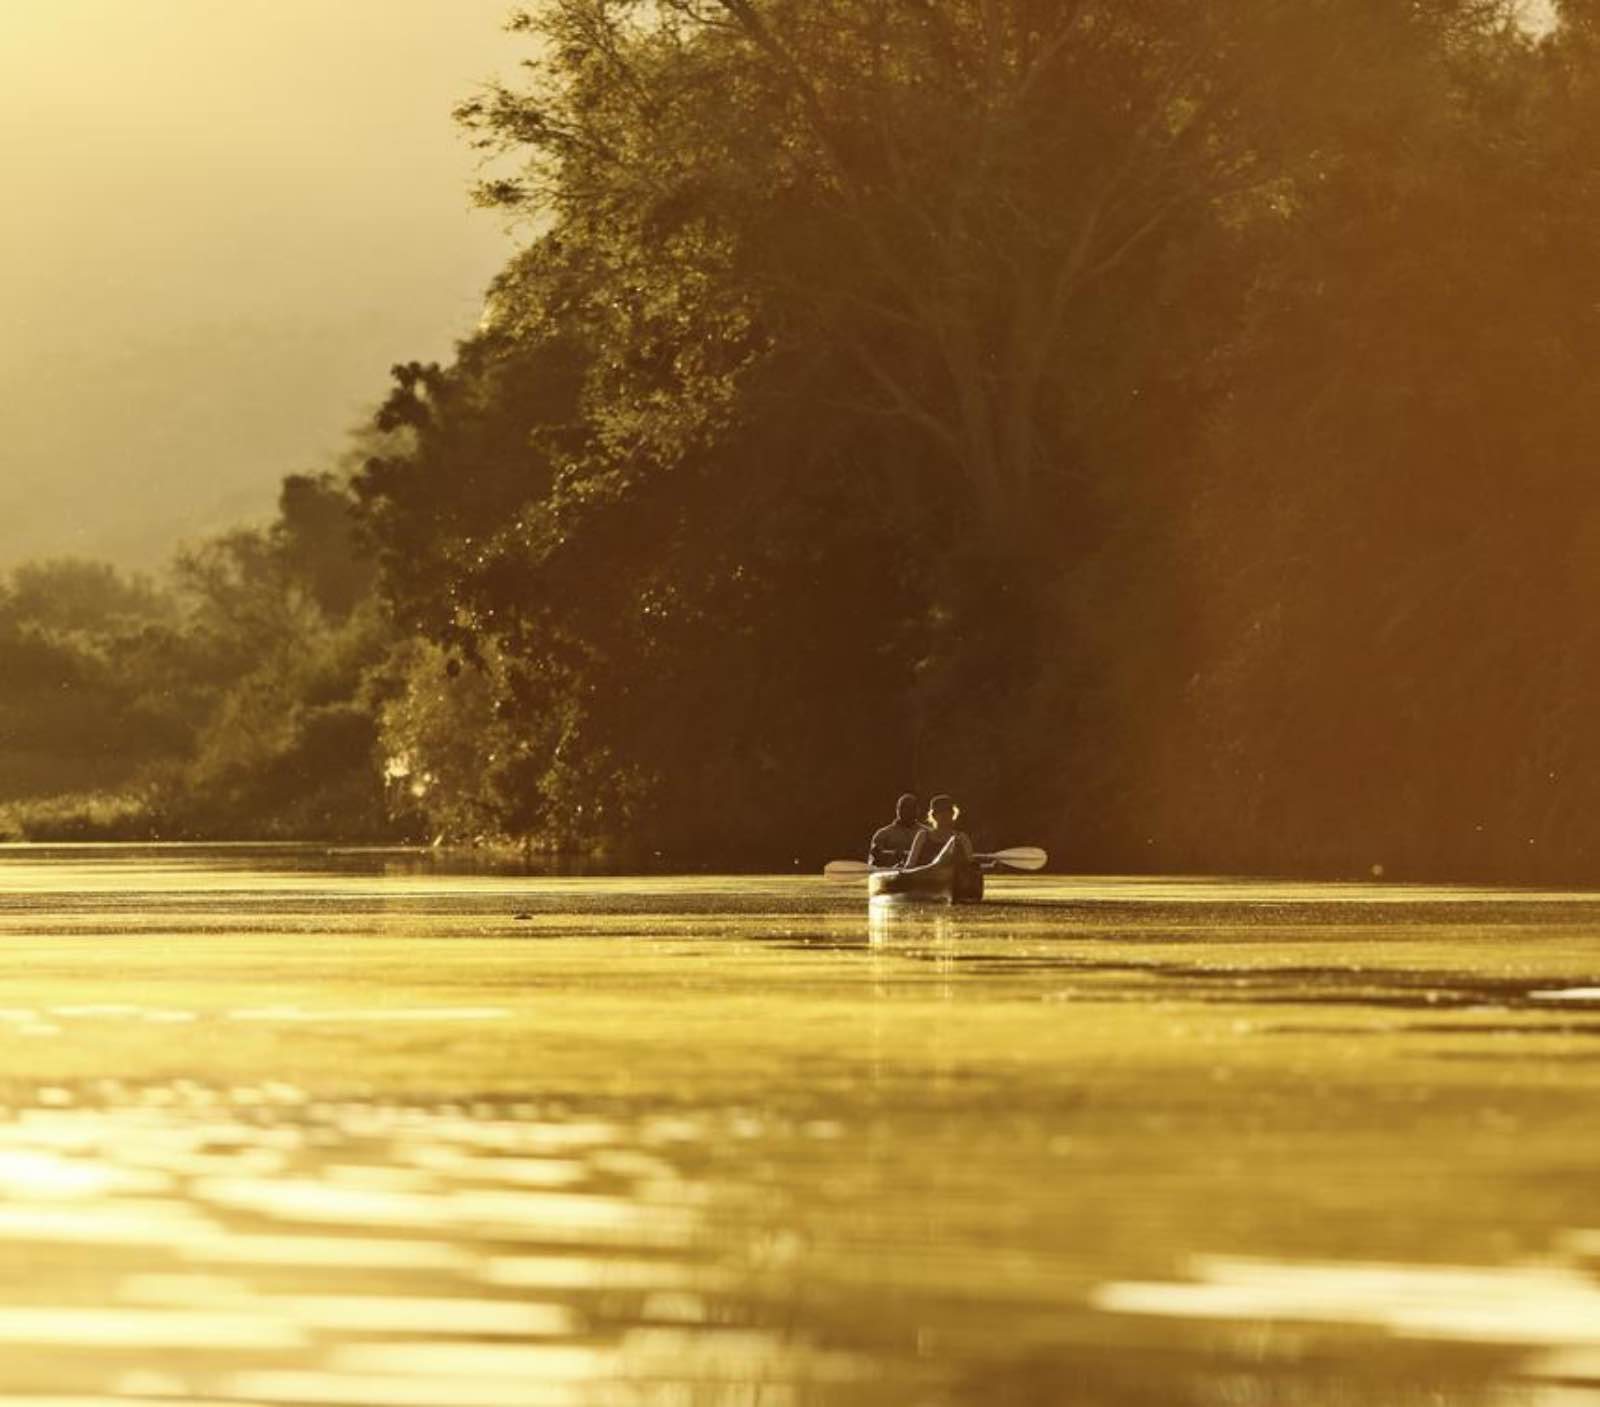 Chongwe canoeing at golden hour